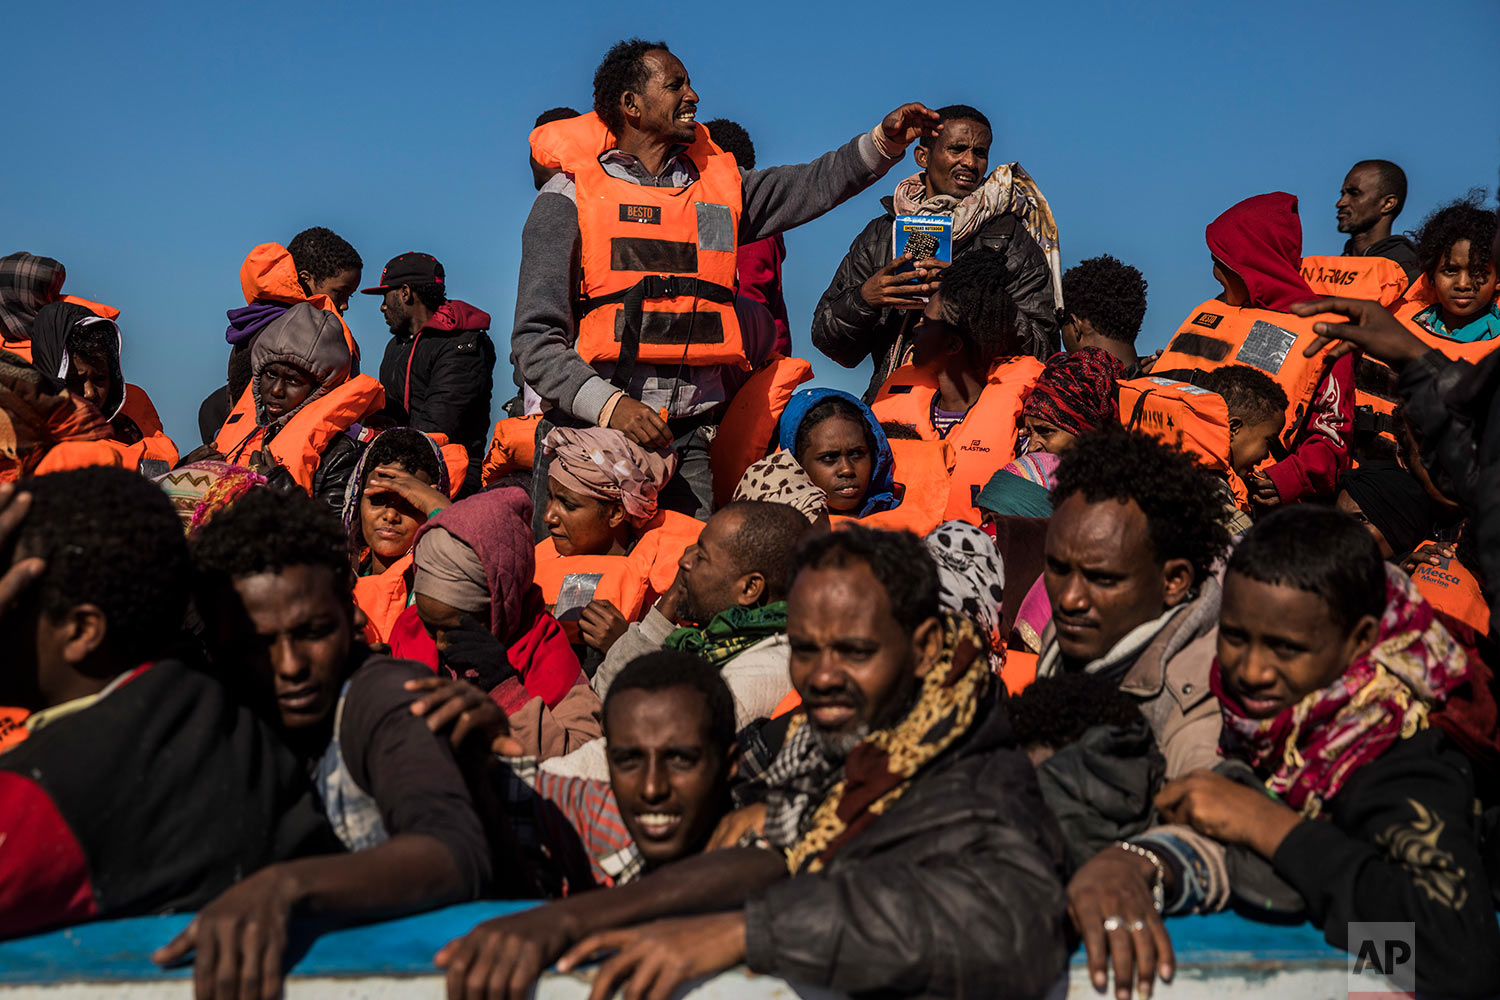 In this Tuesday, Jan. 16, 2018 photo, about 450 Sub-Saharan refugees and migrants, mostly from Eritrea, wait to be rescued by aid workers of Spanish NGO Proactiva Open Arms, as they were trying to leave the Libyan coast and reach European soil aboard an overcrowded wooden boat, 34 miles north of Kasr-El-Karabulli, Libya. (AP Photo/Santi Palacios)